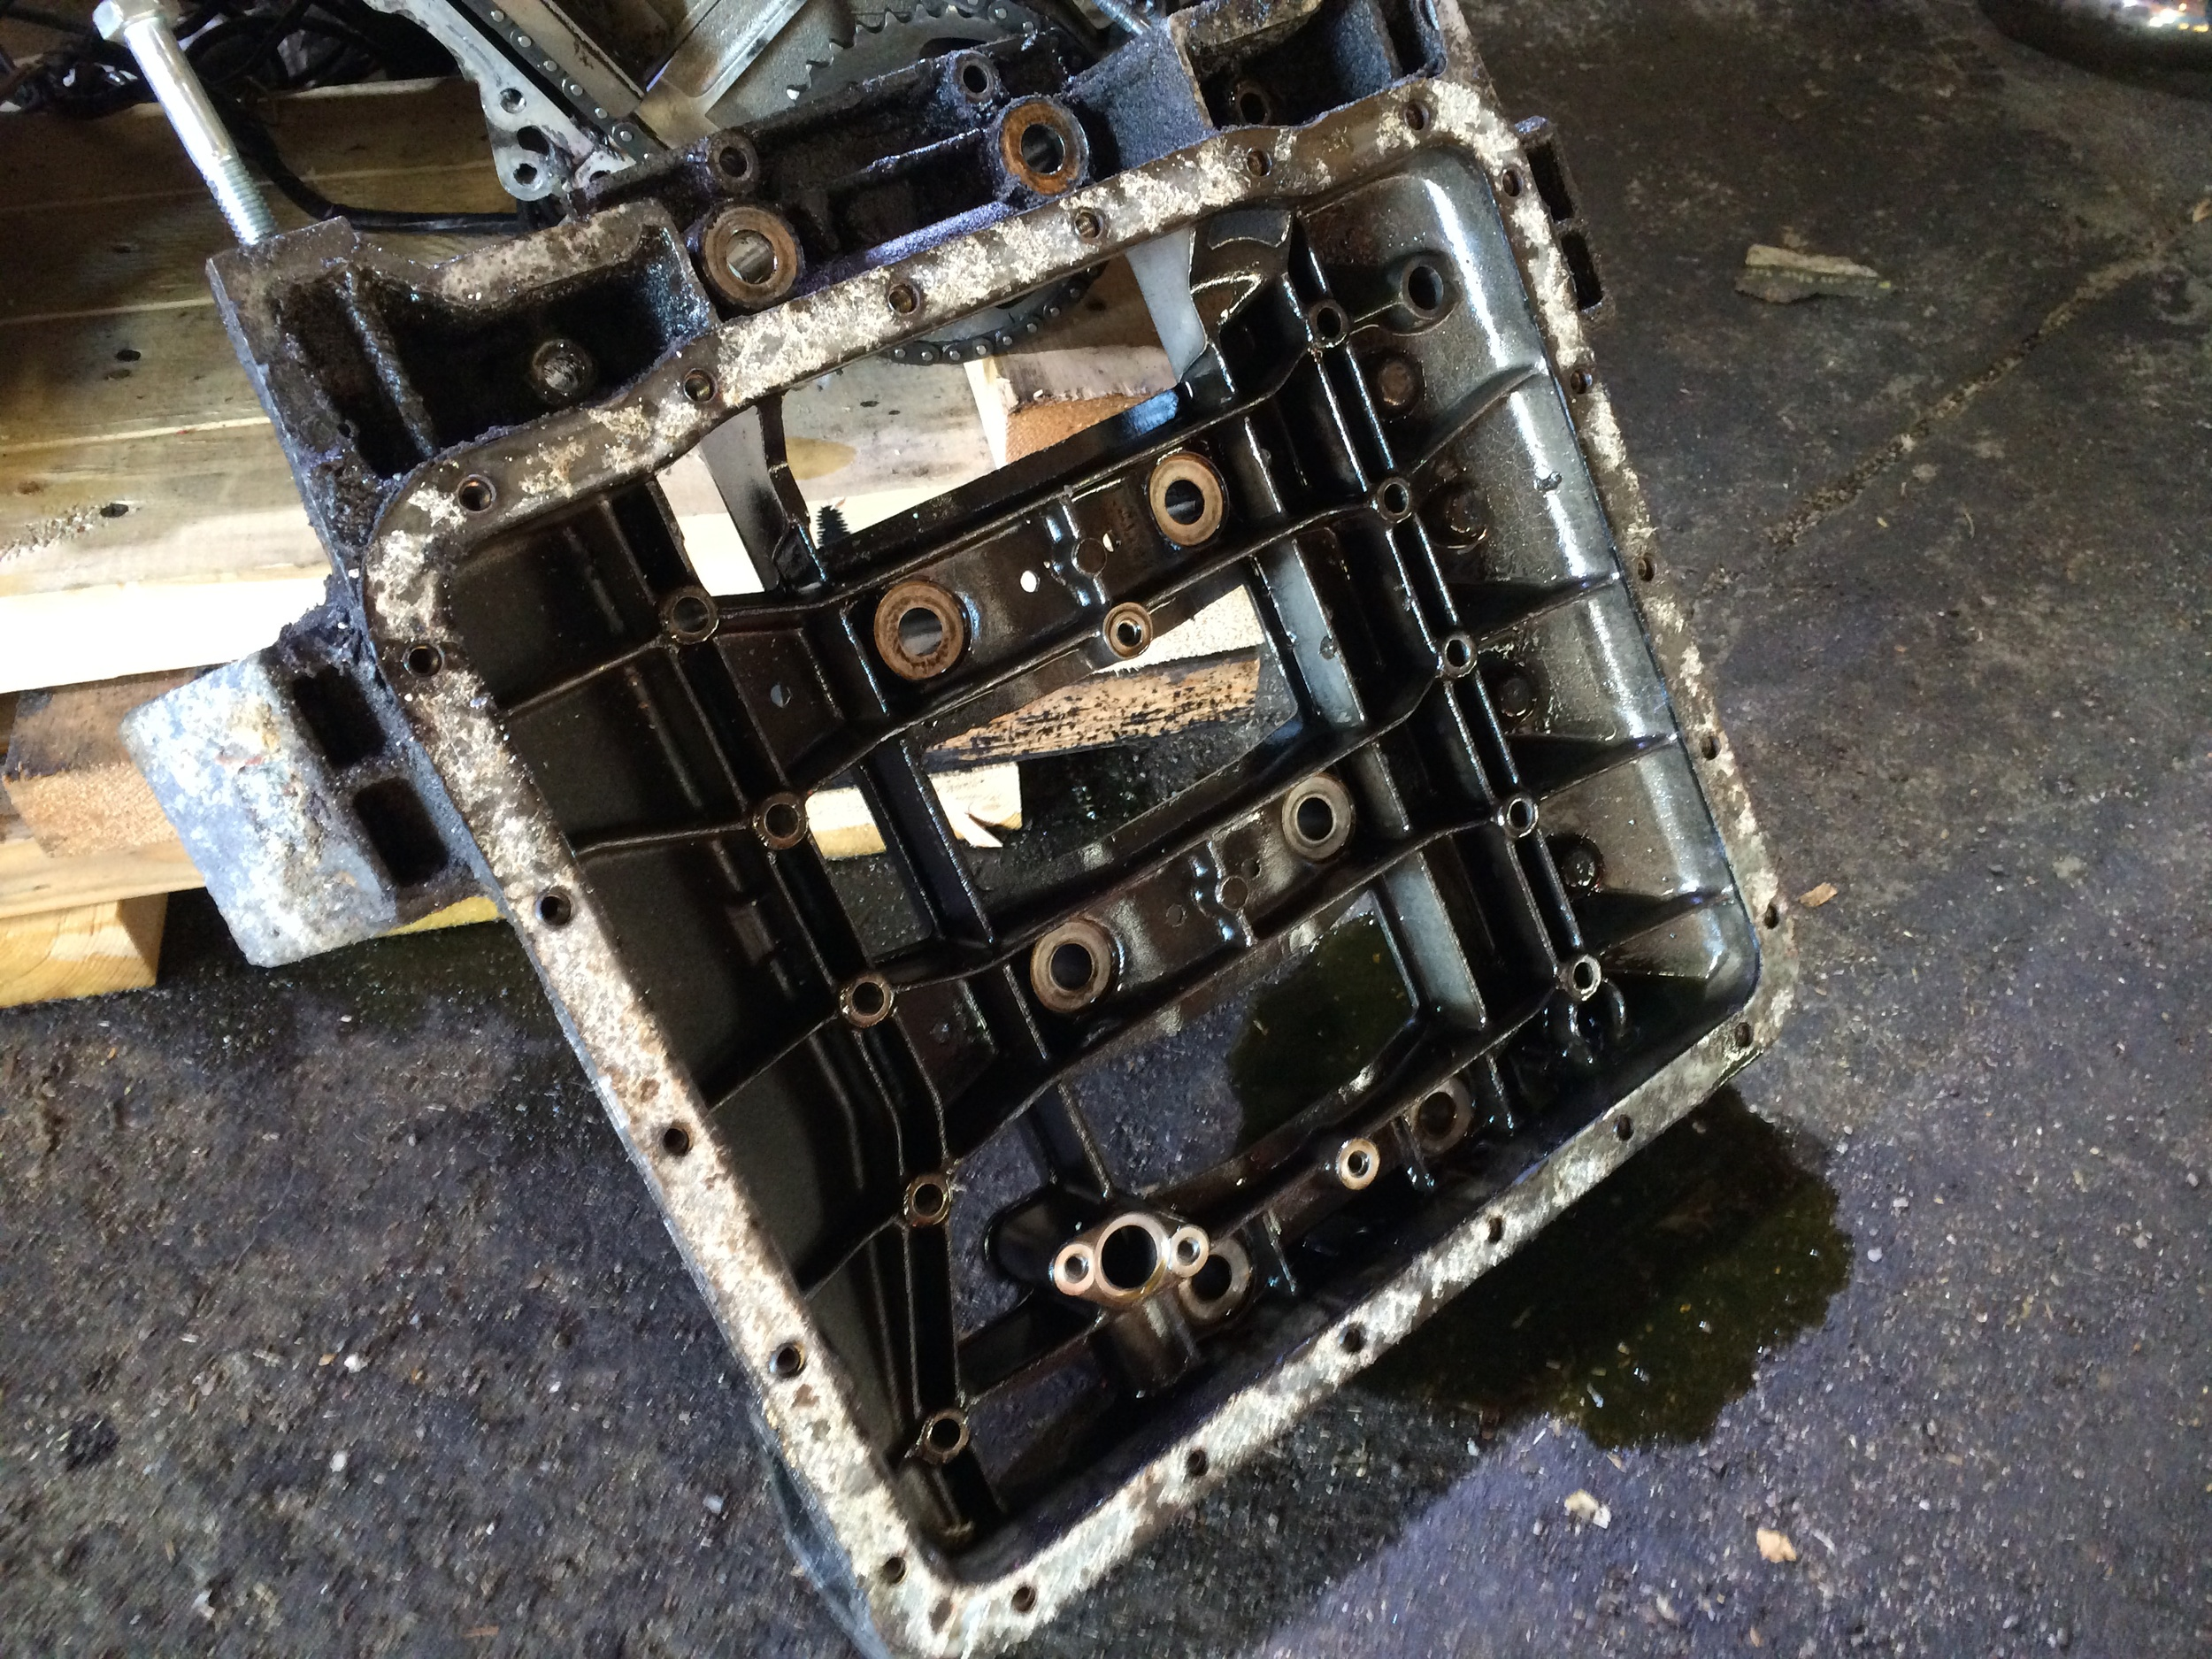 Lower Crankcase Removed